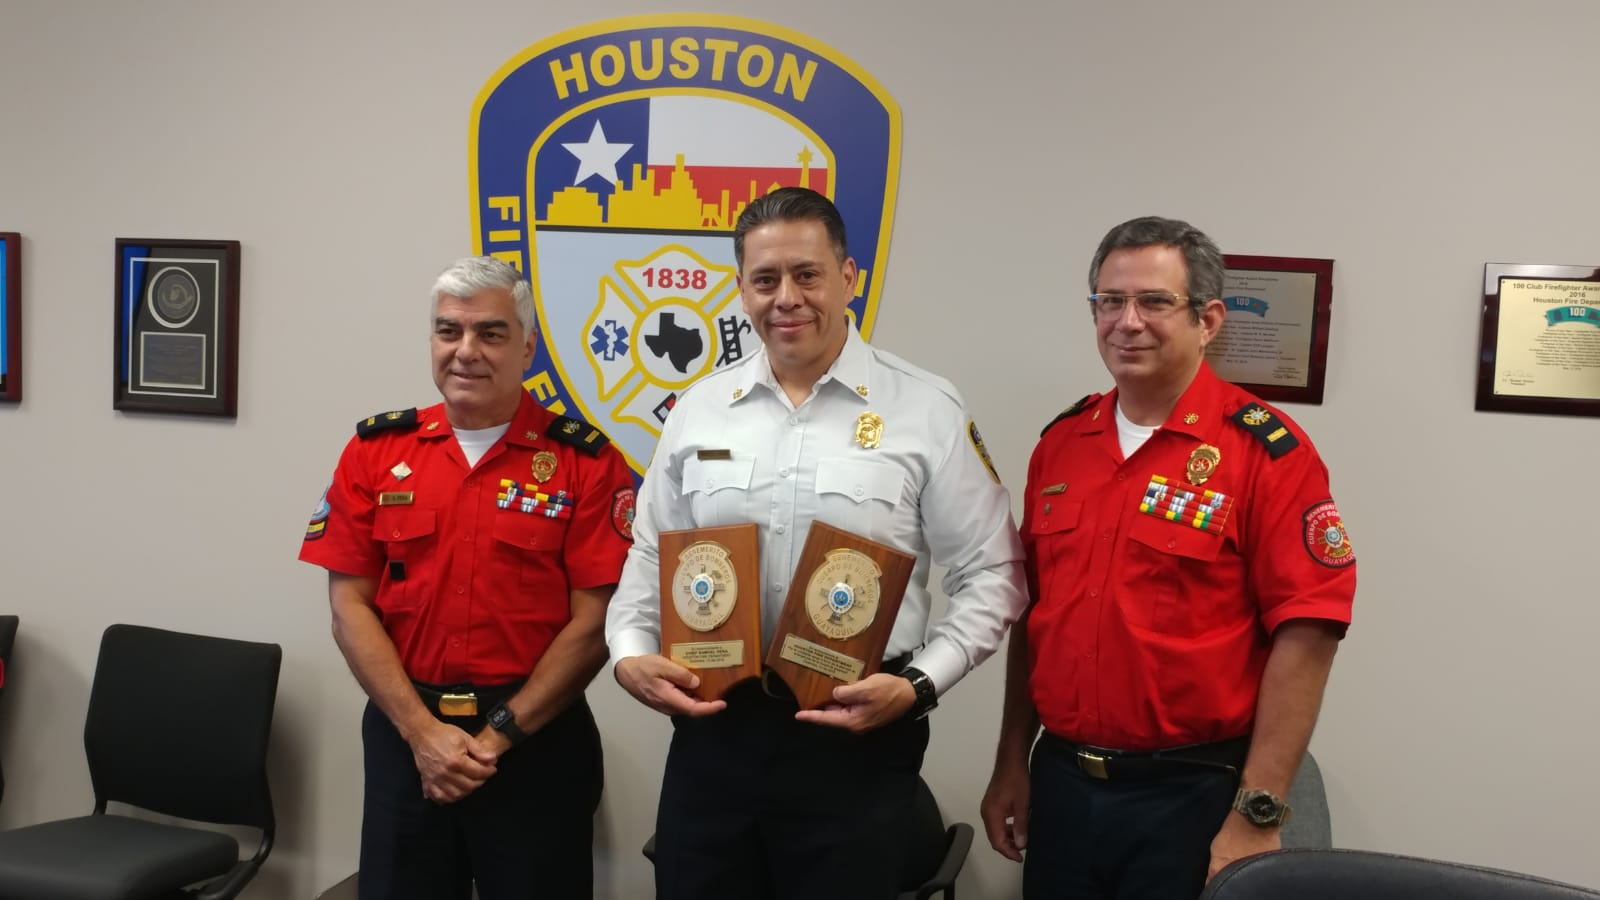 Recognition to Chief Pena from BCBG